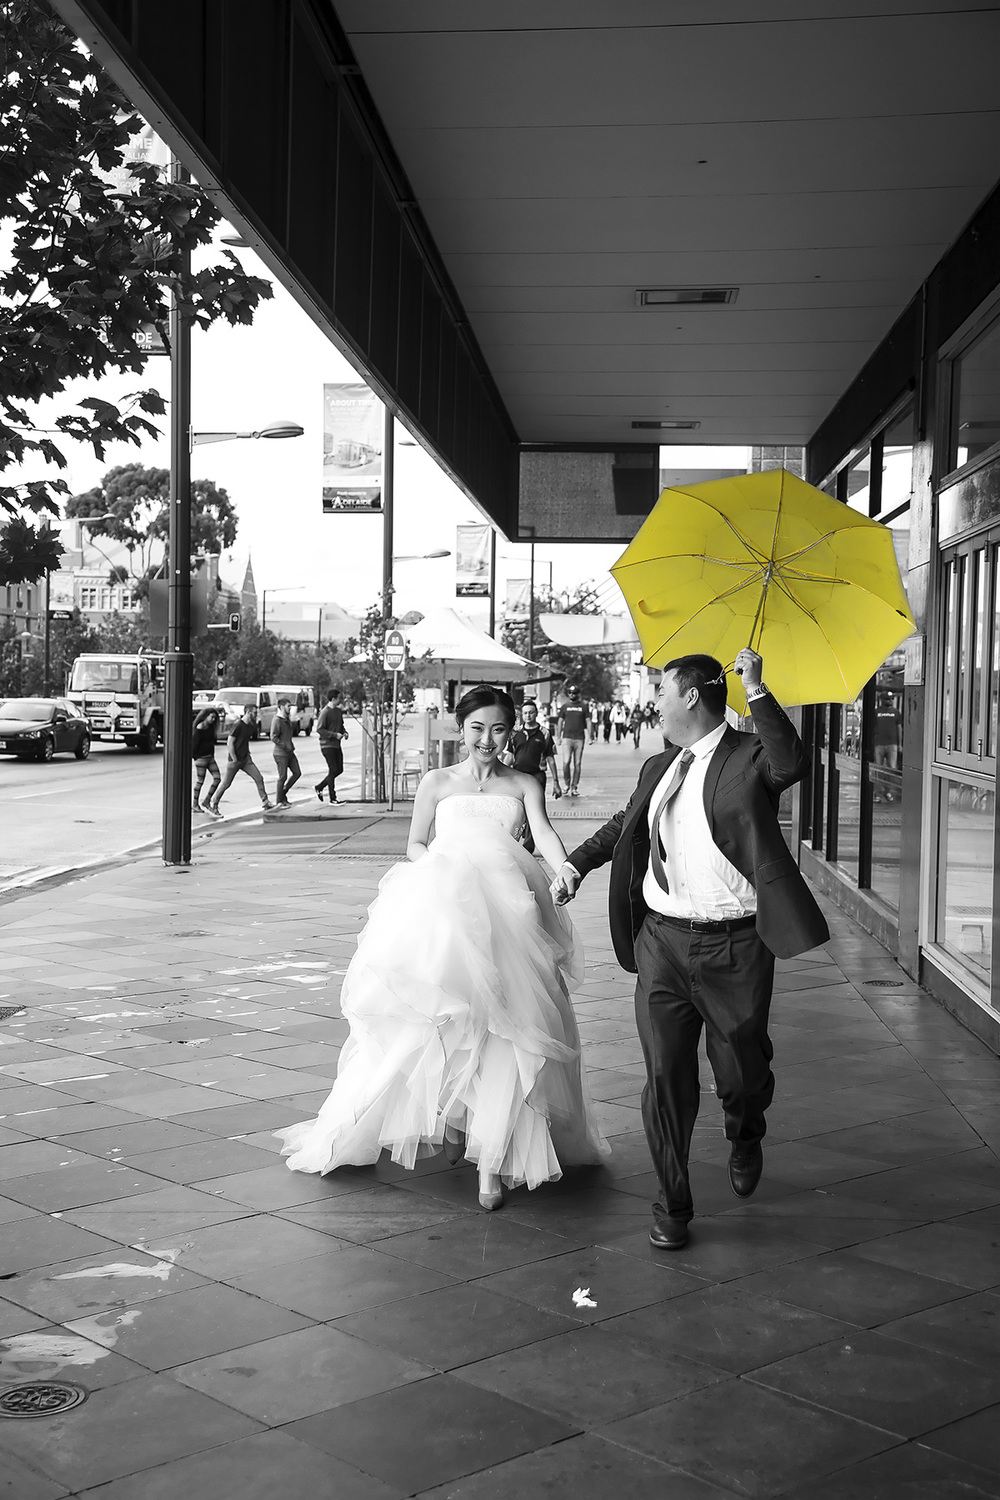 Wedding Photography Adelaide City - Running with Umbrella